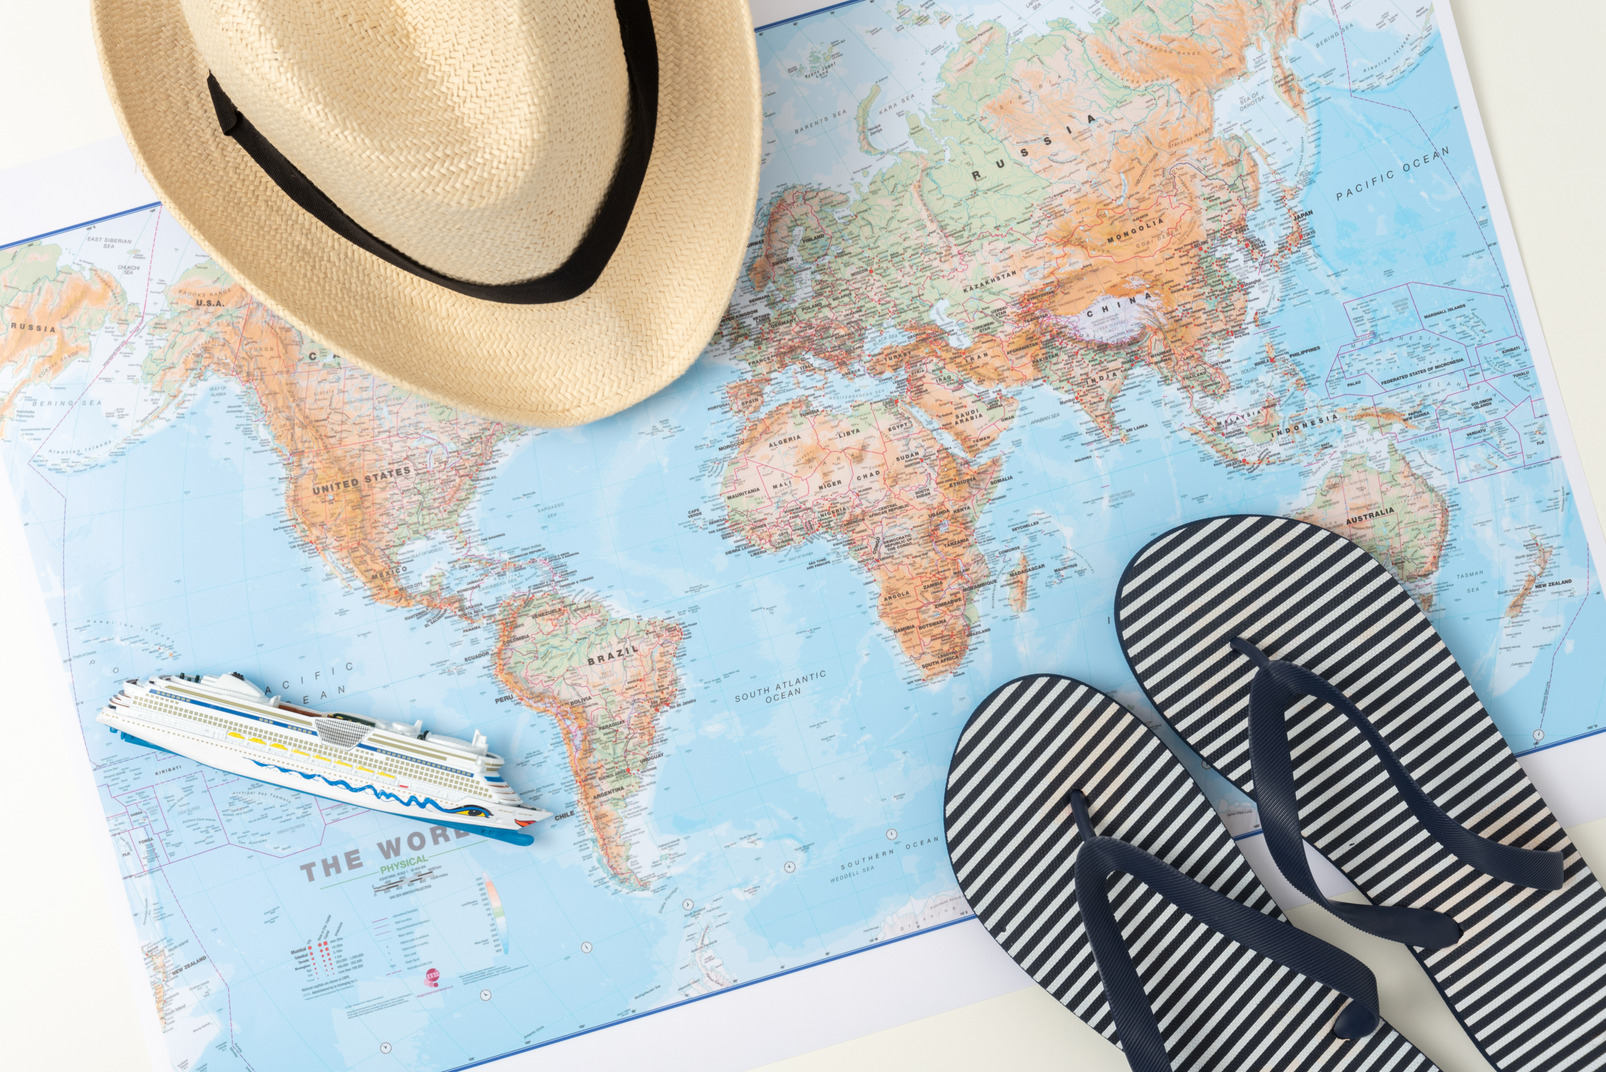 A straw hat, a map and flip-flops, aka every summer tourist's starter pack